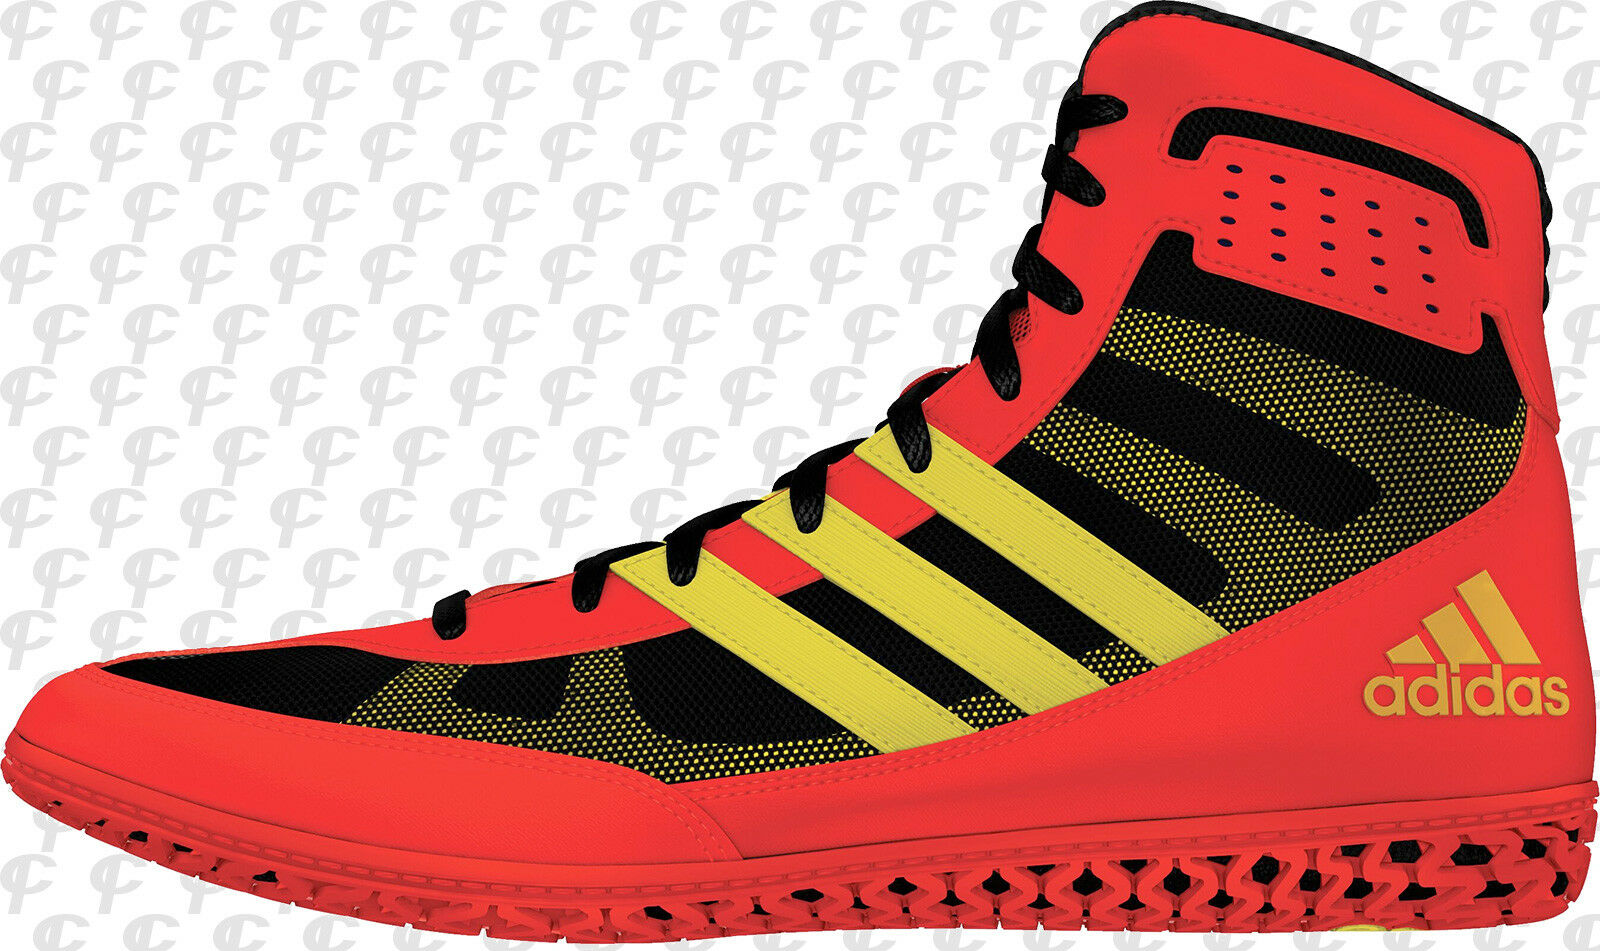 Adidas Mat Wizard Men's Wrestling shoes Red-Yellow-Black BB2859 NEW